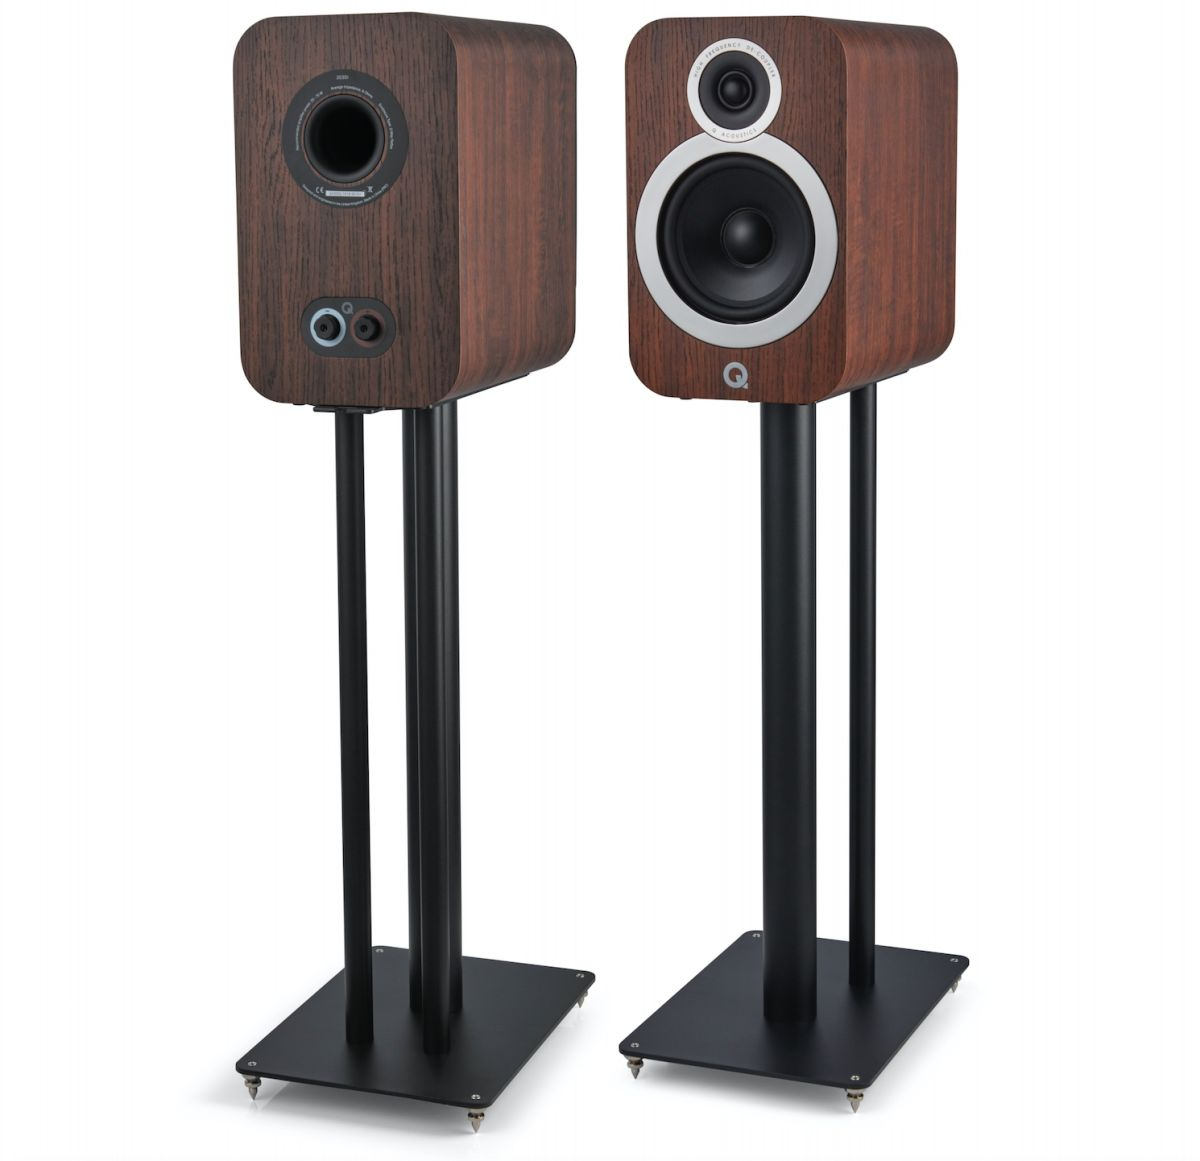 Q Acoustics expands 3000i range with powerful 3030i standmount loudspeaker